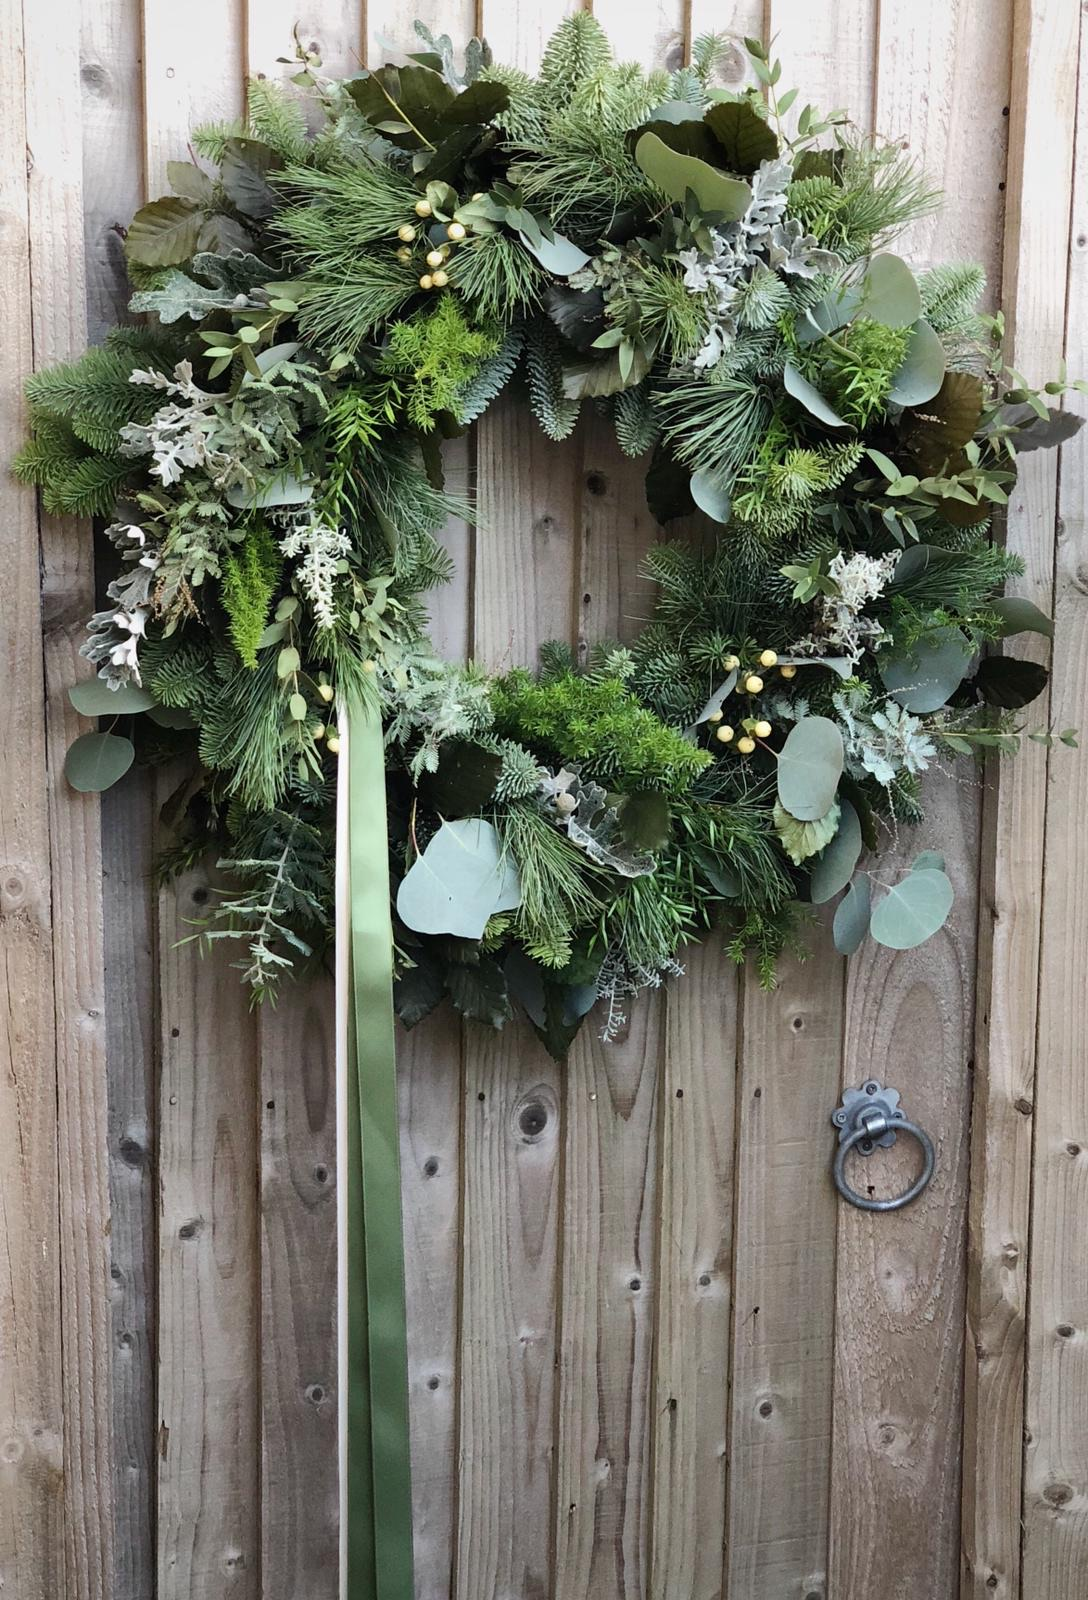 Christmas wreaths by Donna Carley